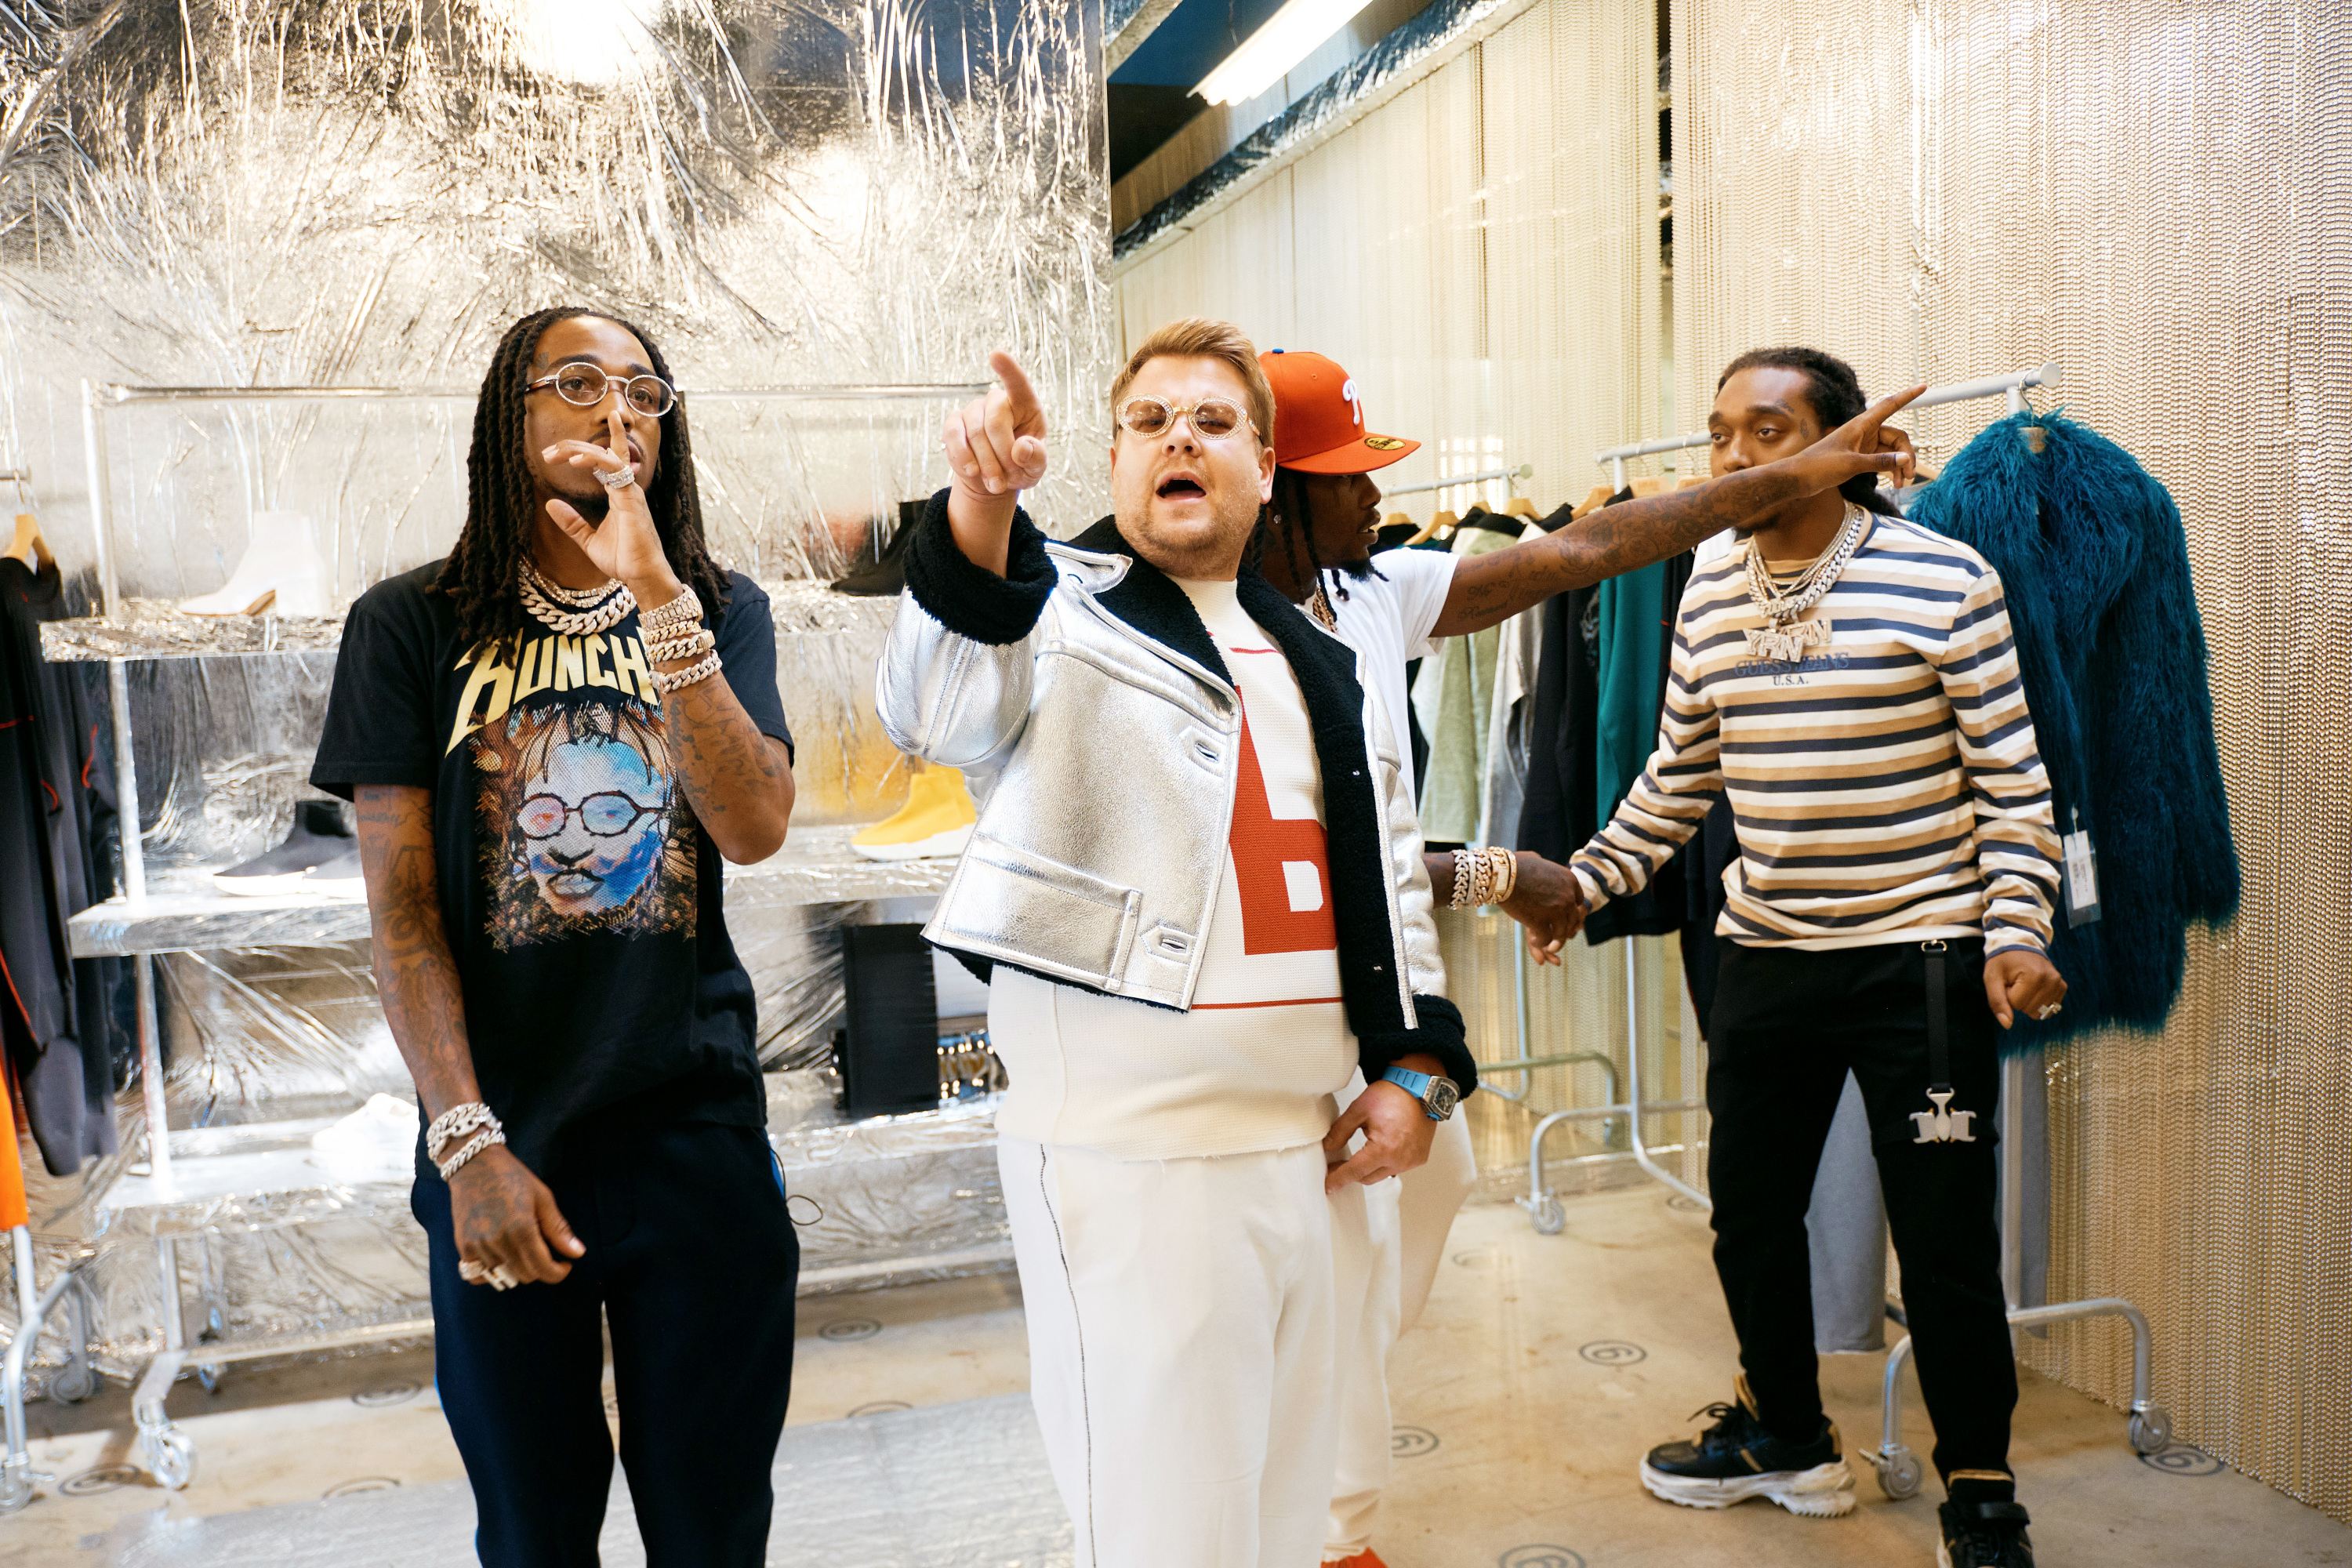 Migos transform James Corden's look in Carpool Karaoke